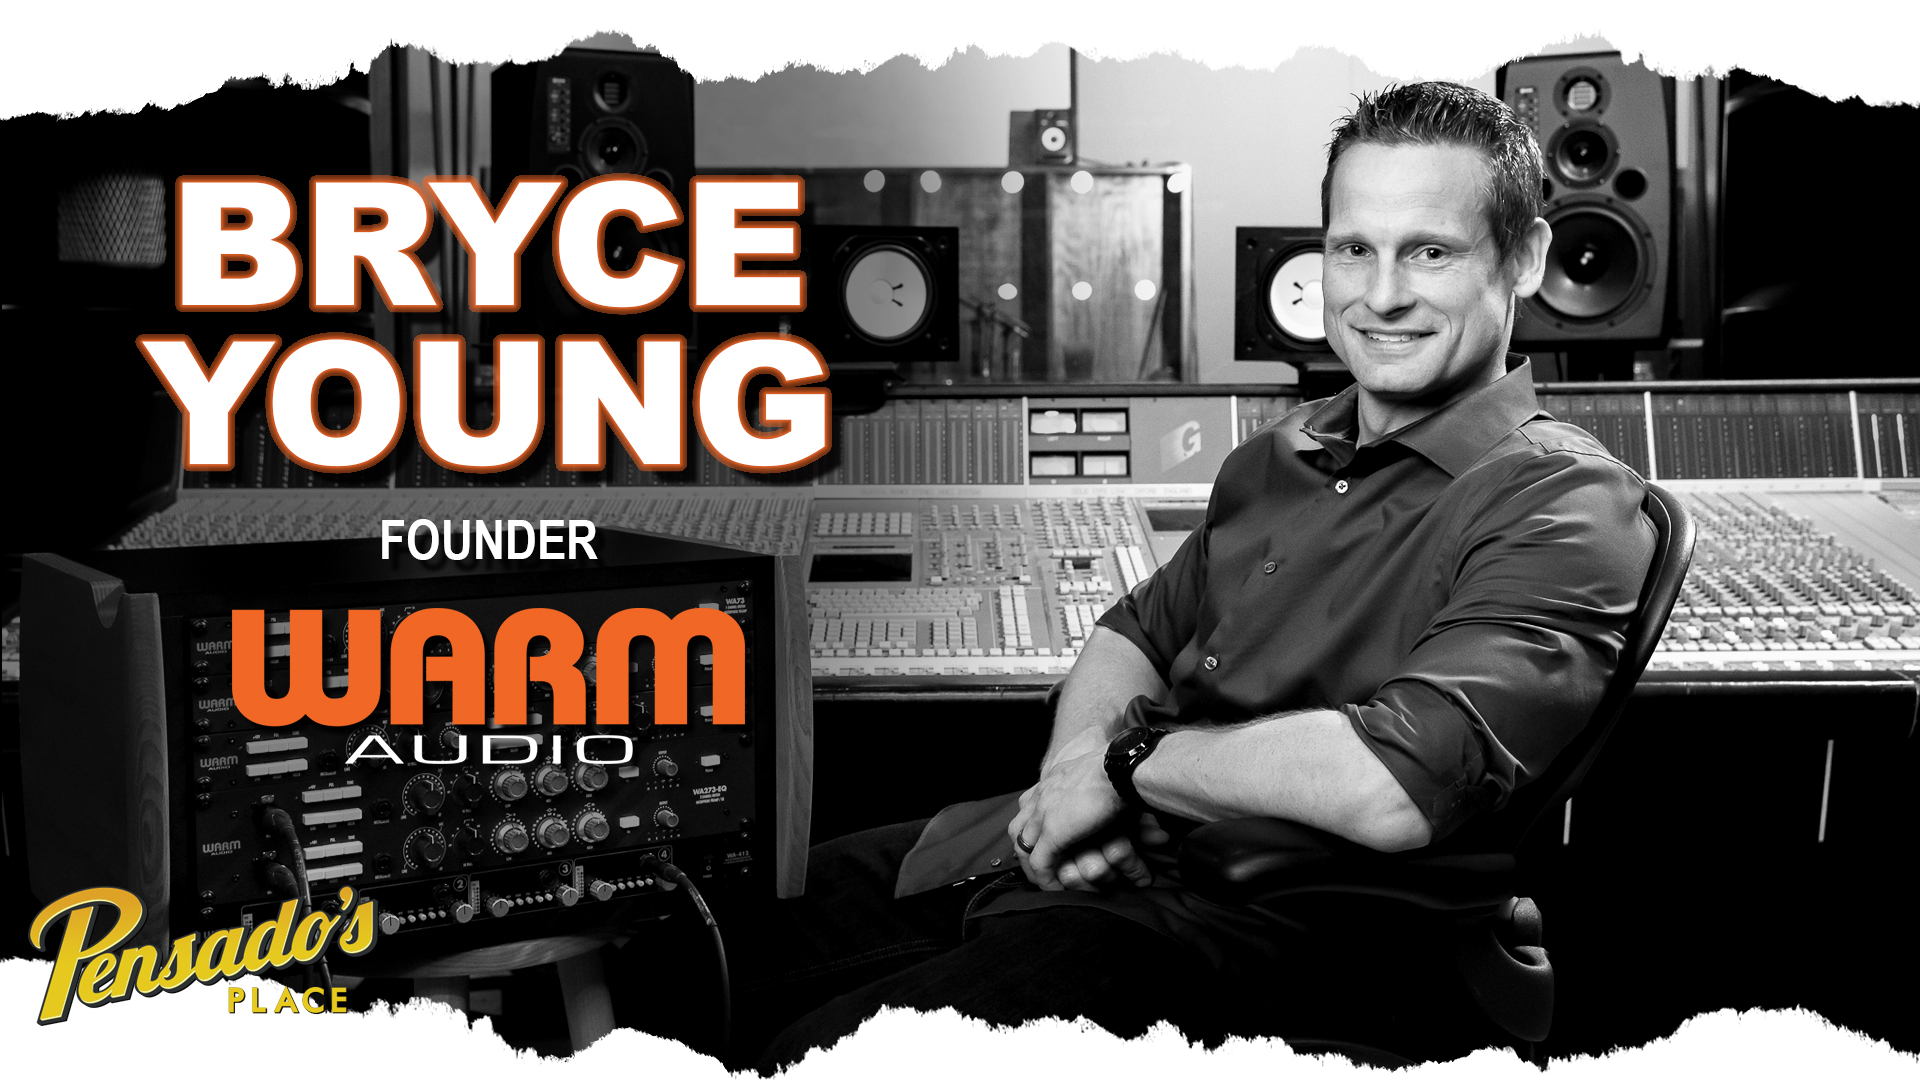 Founder of Warm Audio, Bryce Young